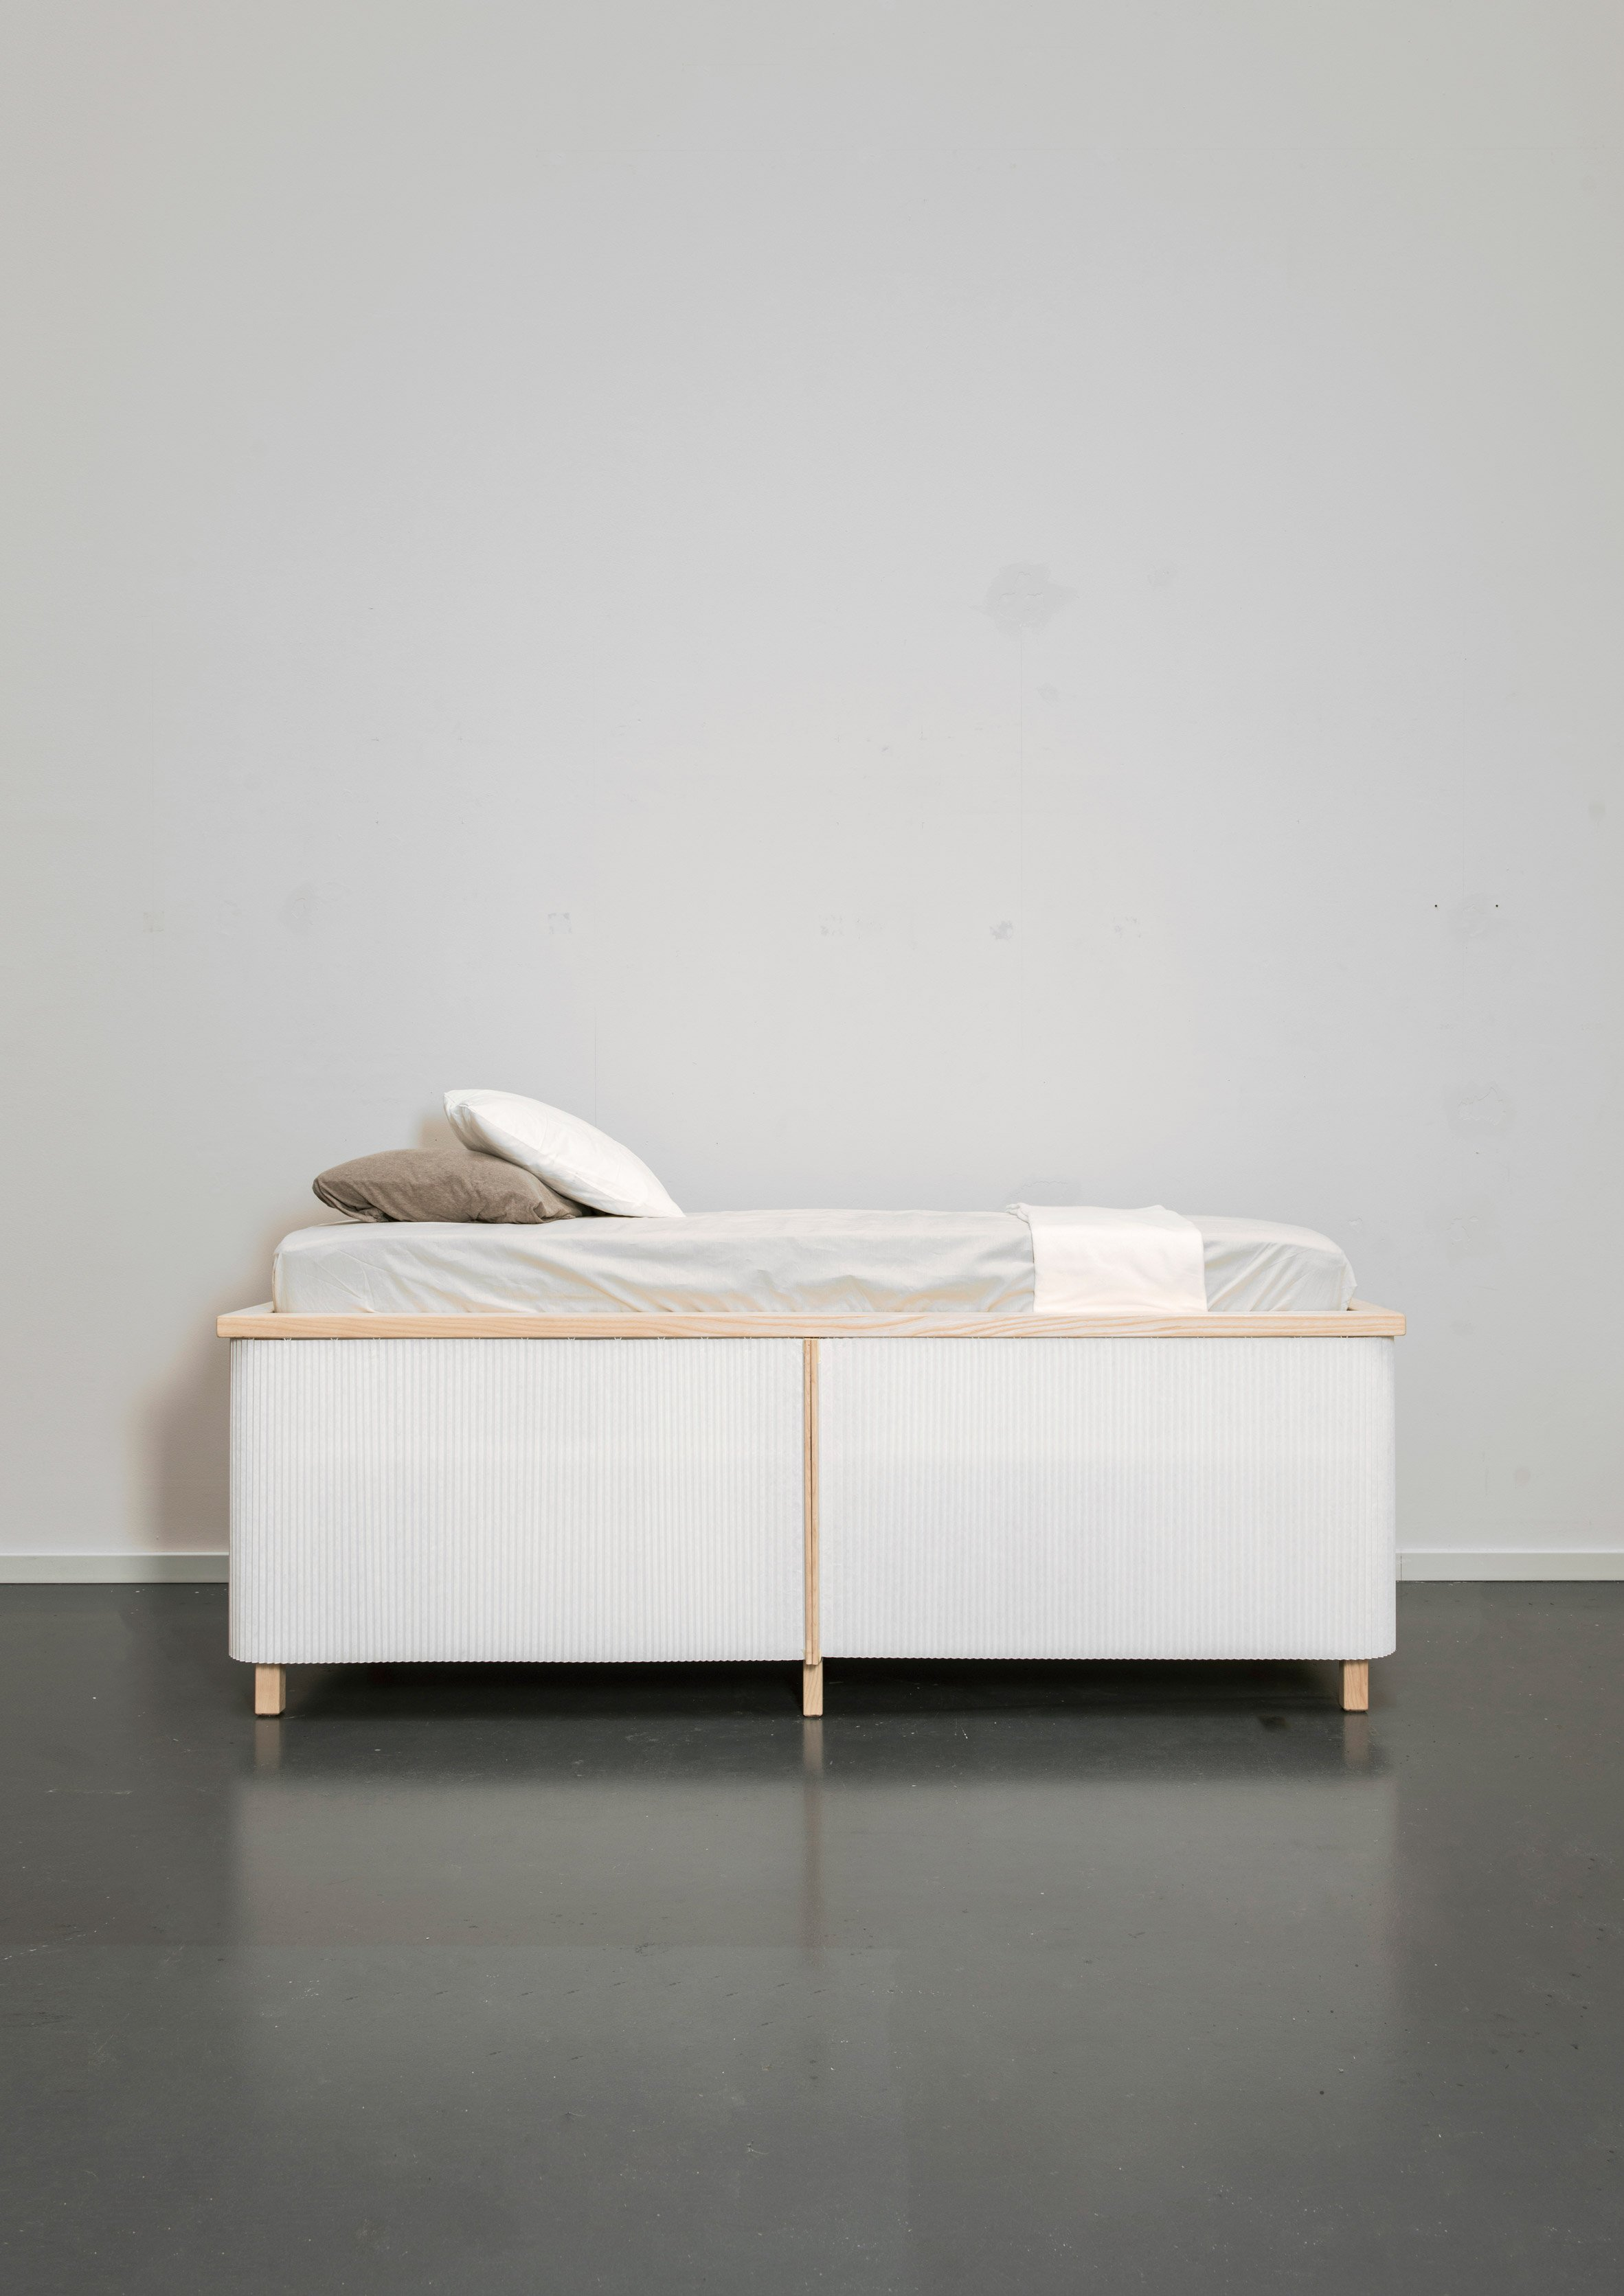 IGNANT-Design-Yesul-Jang-Tiny-Home-Bed-4